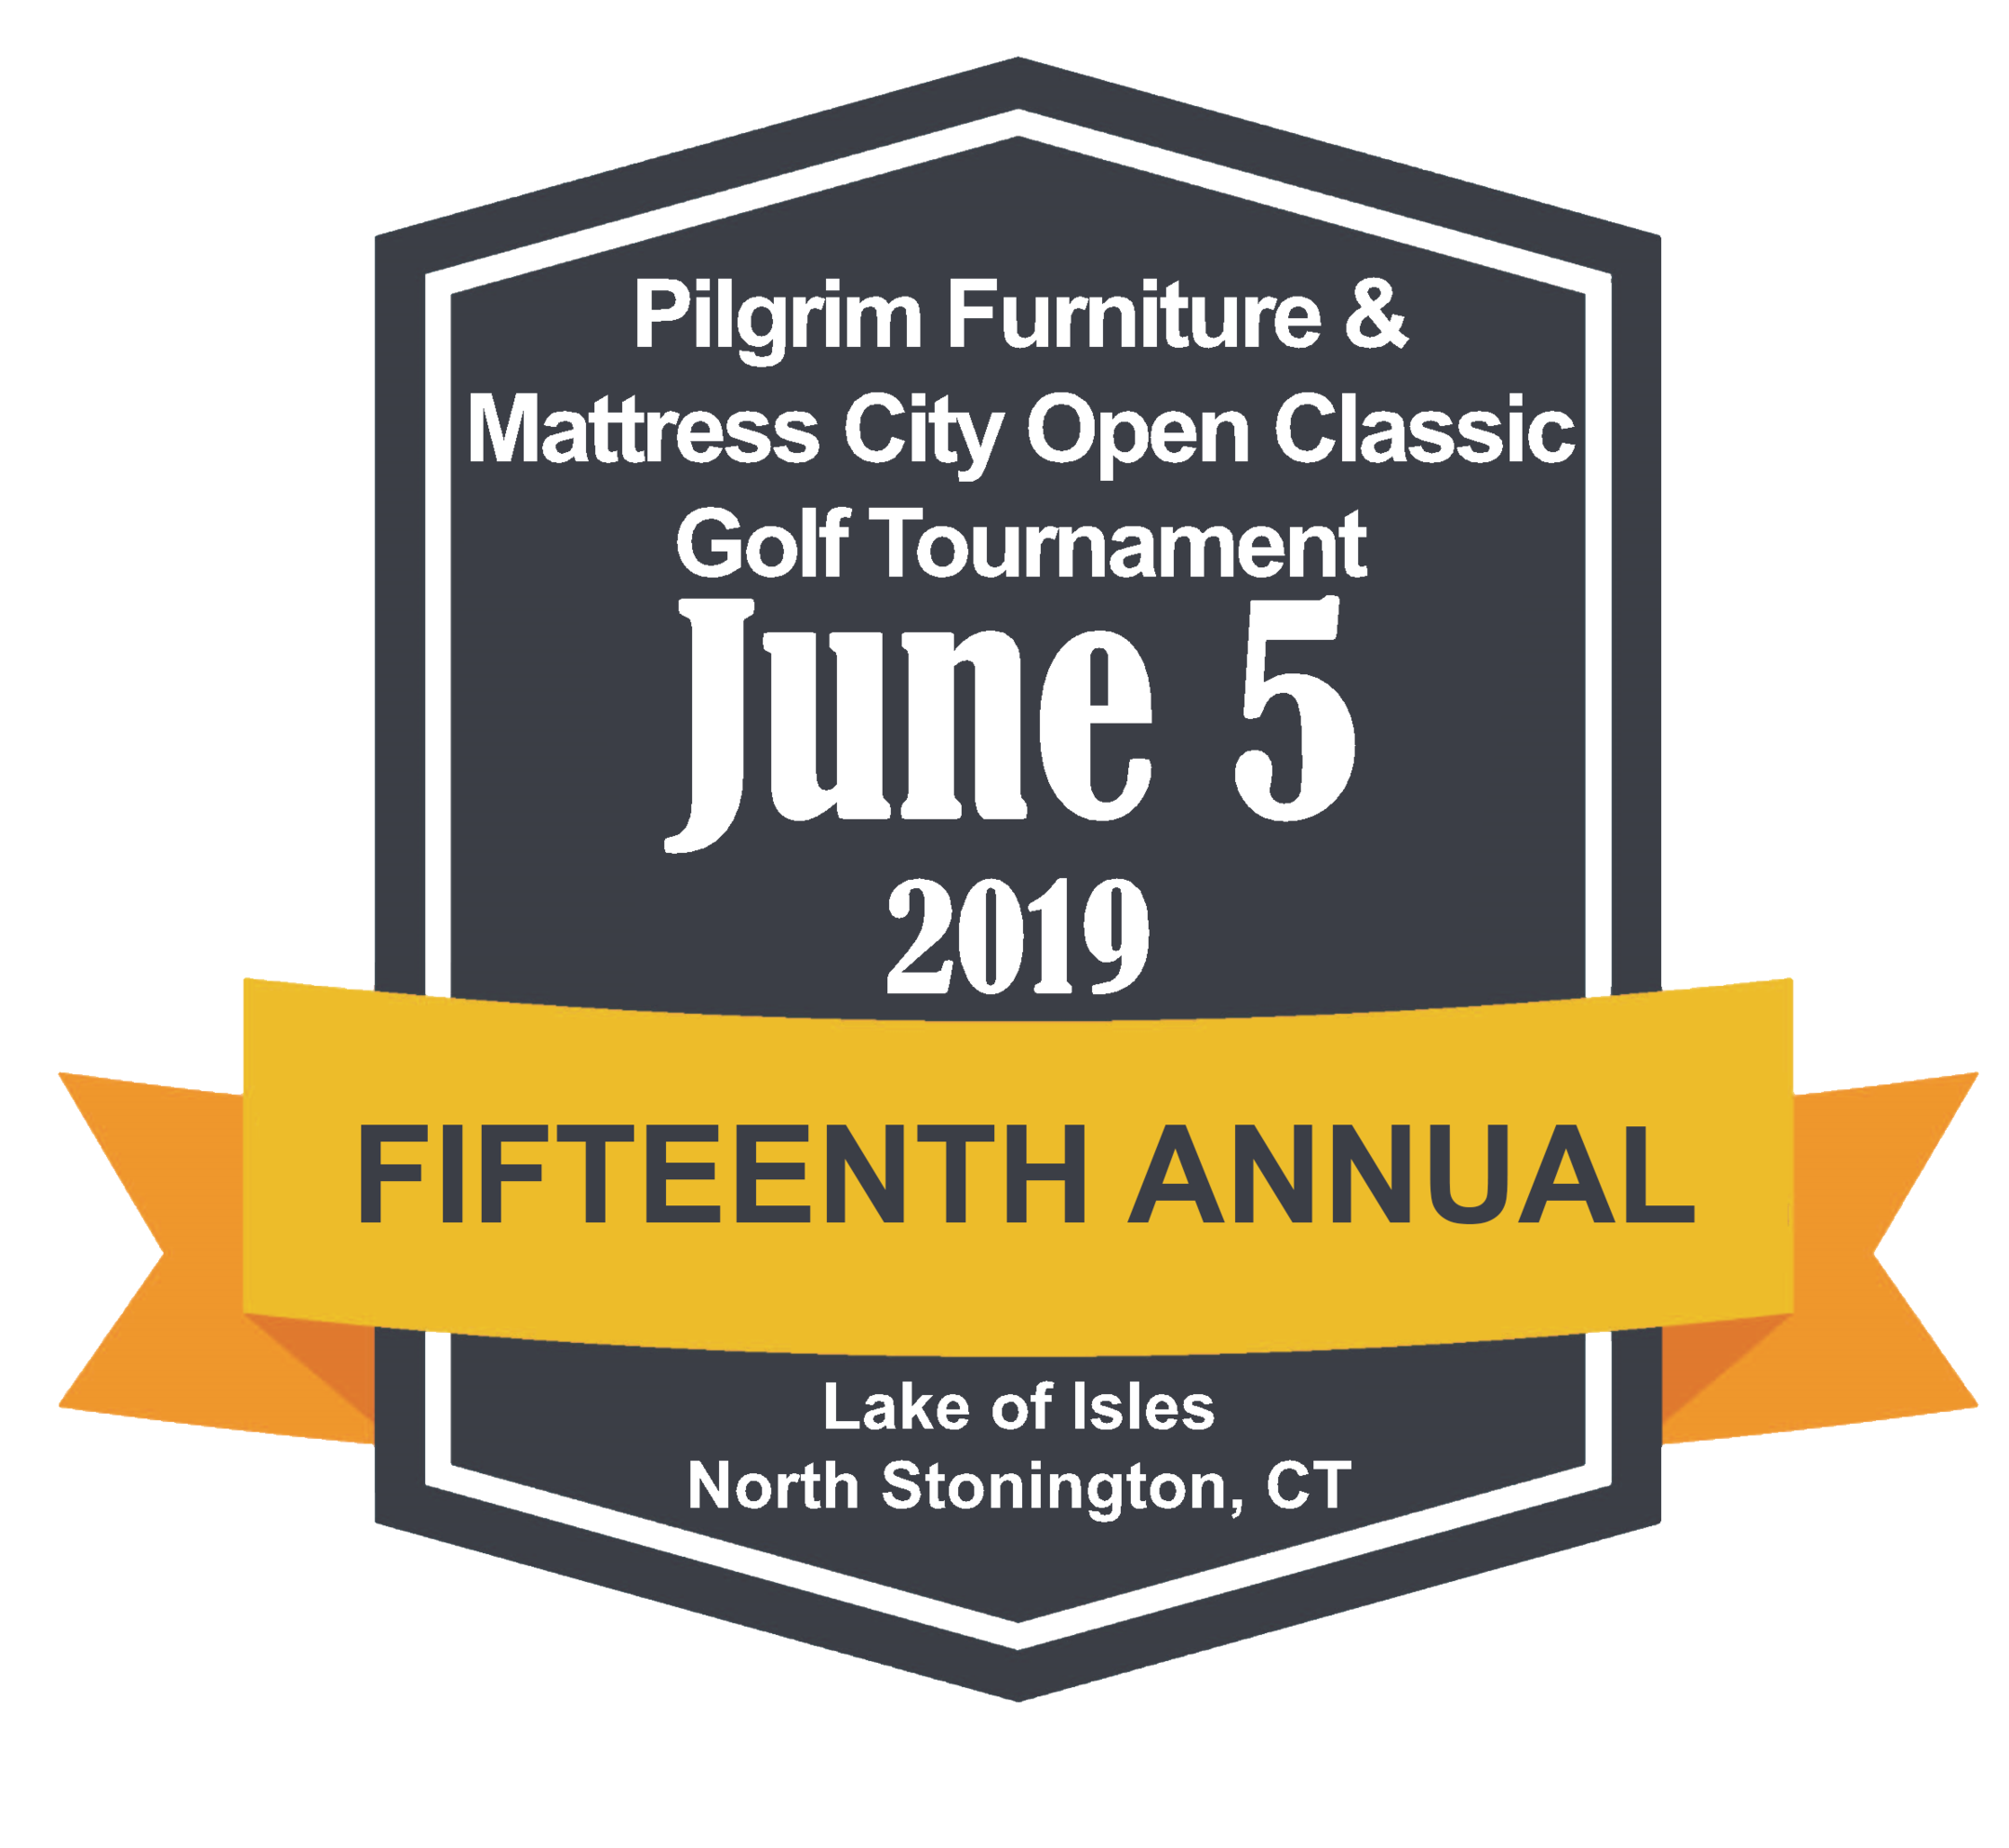 15th Annual Pilgrim Furniture Mattress City Open Classic Golf